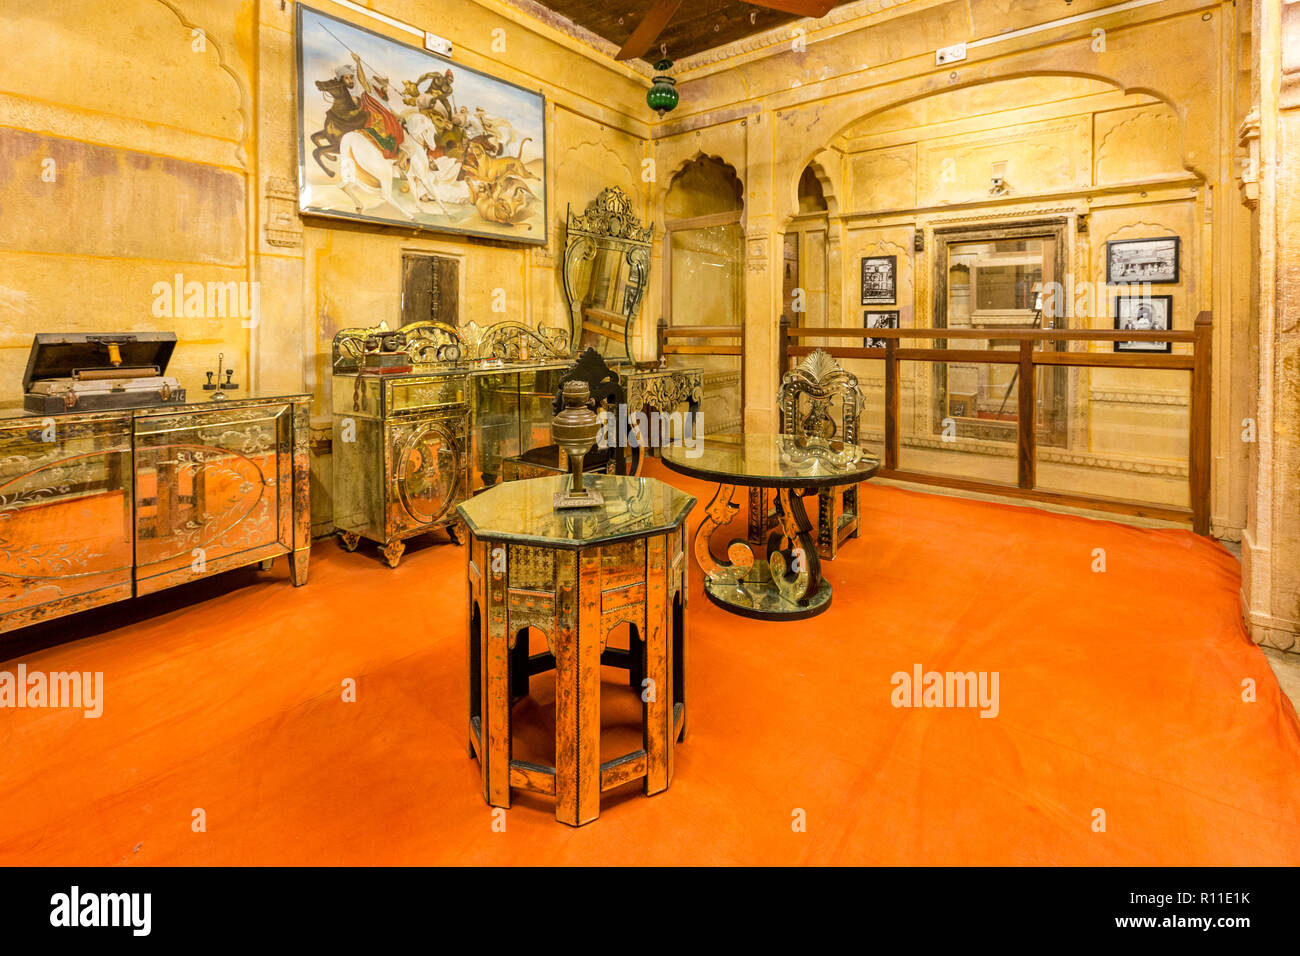 Antique items inside the Patwon-ki-Haveli in the desert town of Jaisalmer in the state of Rajasthan in western India - Stock Image